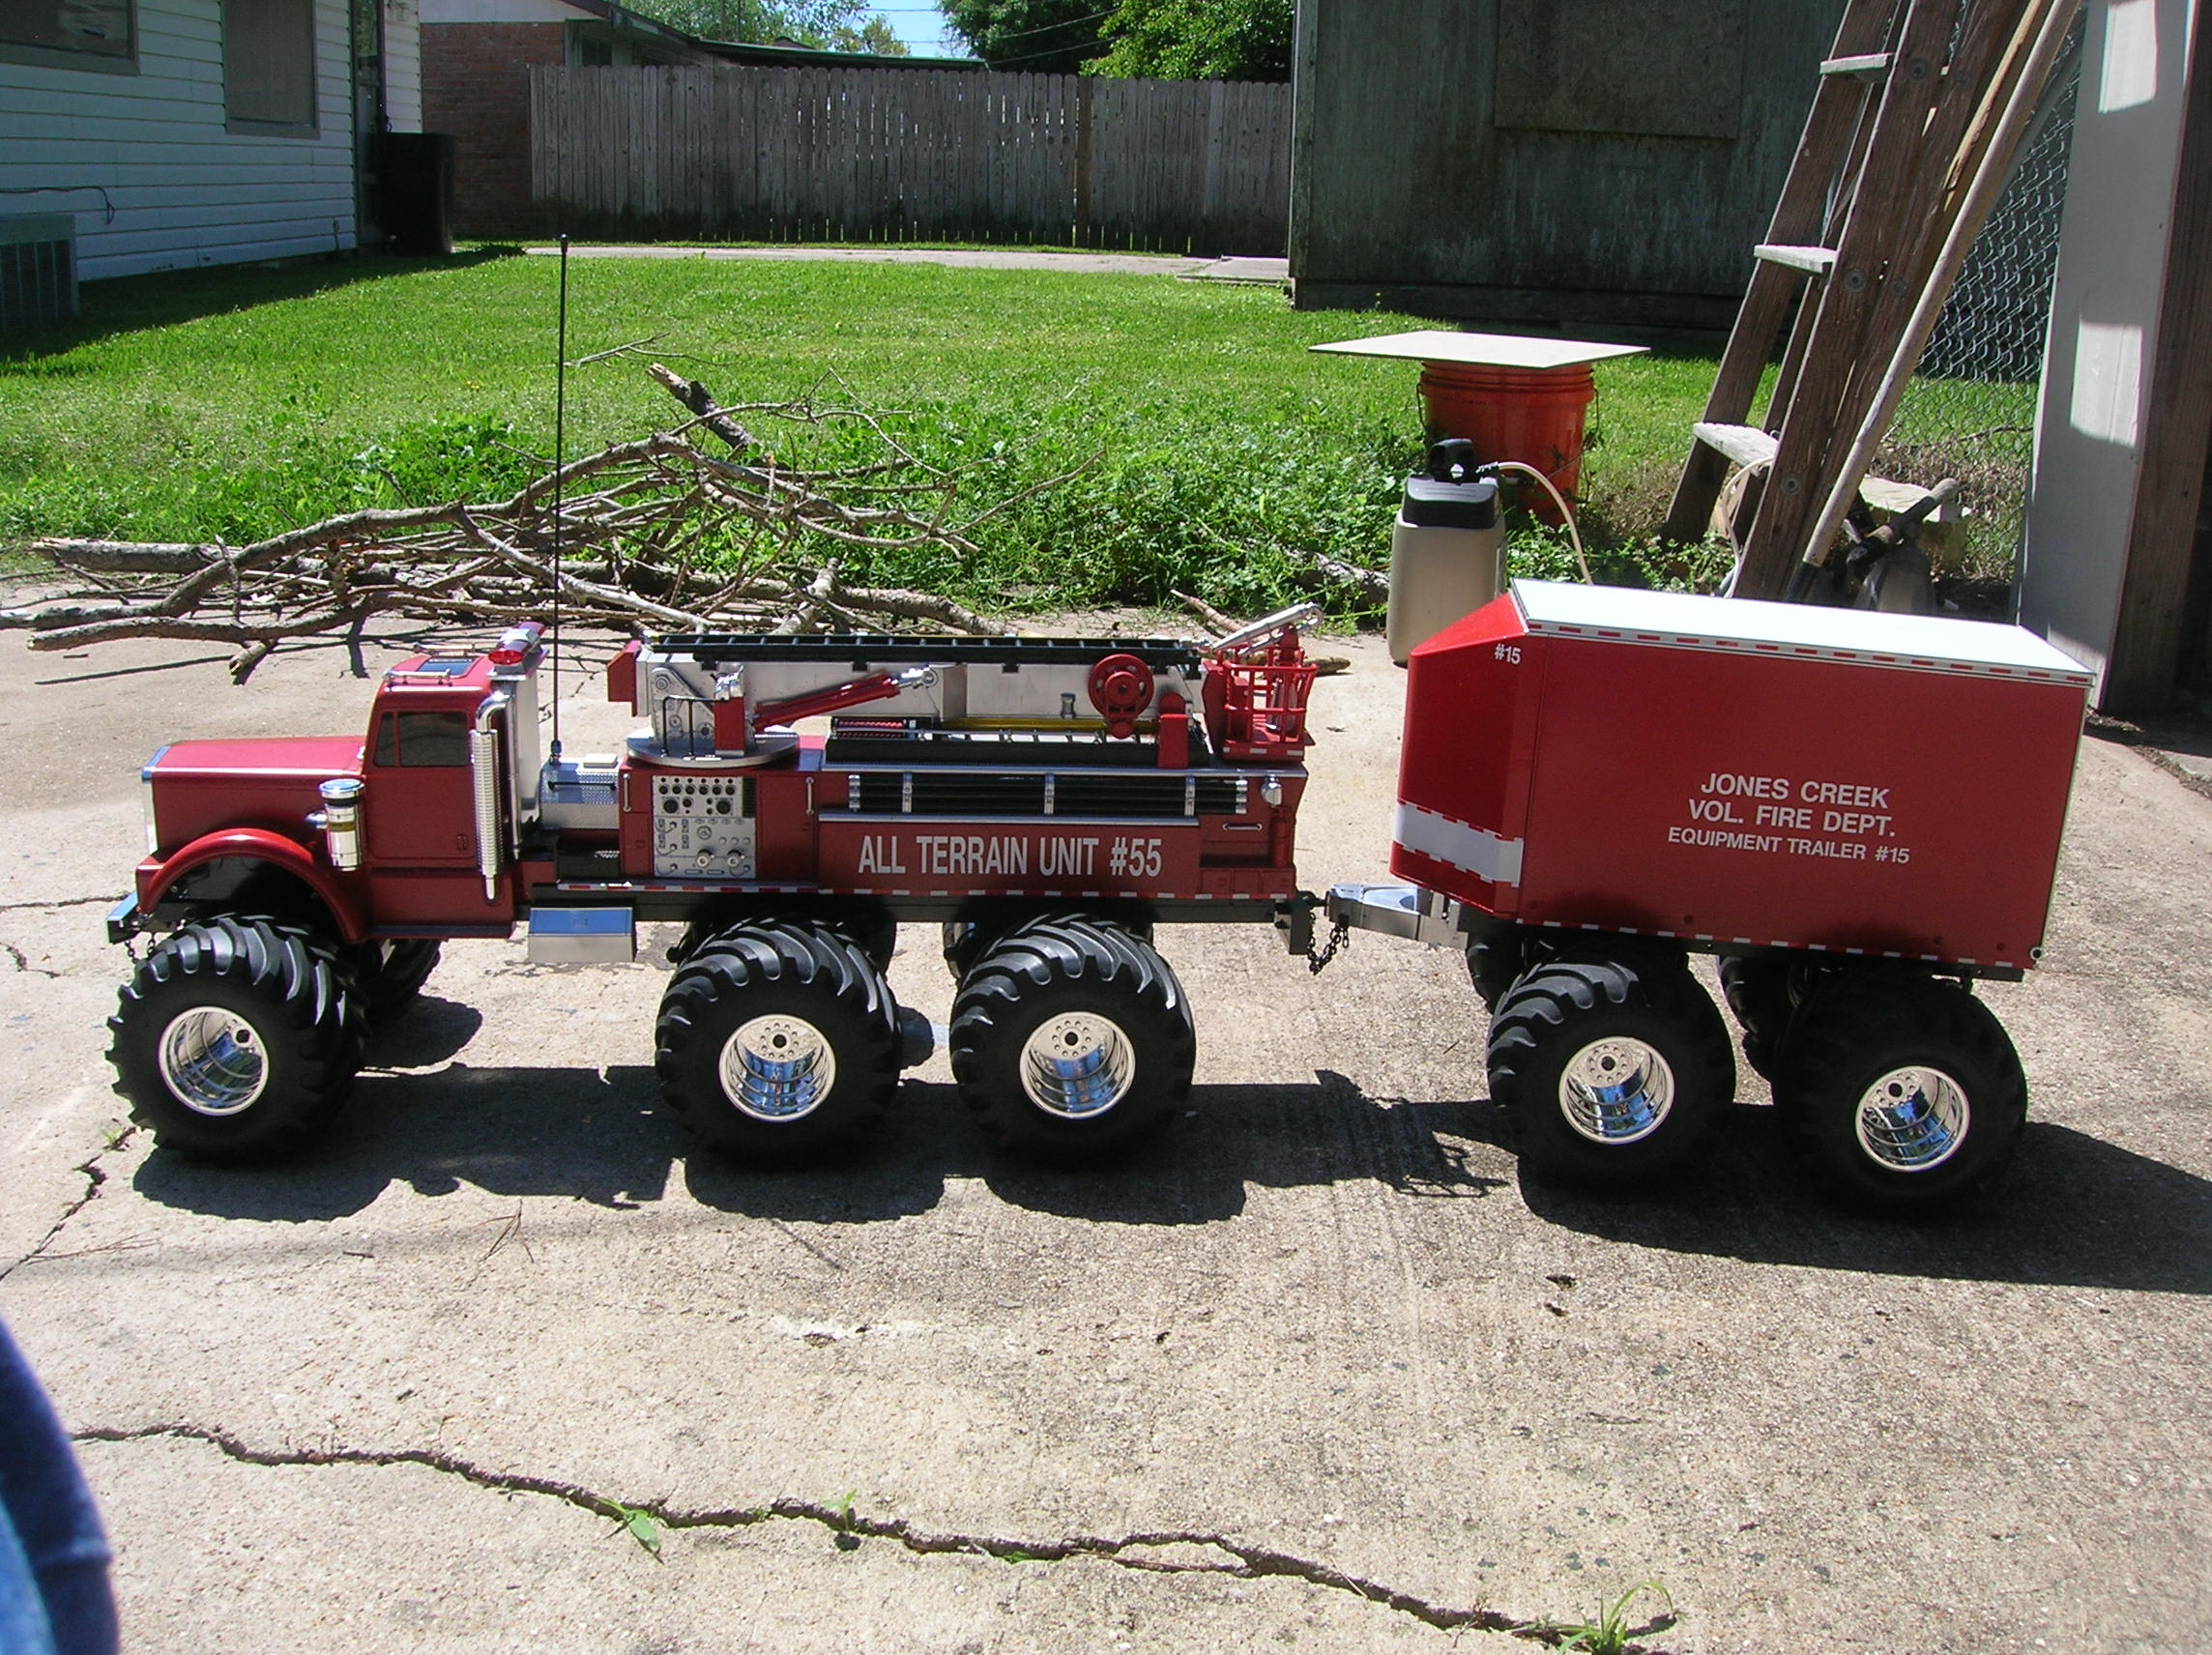 truk remote control with Truck Of The Week 3252012 Custom Fire Truck on Rc Transfomers Frekuensi 24g Mainan Anak Mobil Robot Remote Control 1 likewise Maisto 124 Audi R8 Ferrari 458 Lamborghini Aventador Chevrolet Camaro in addition Rc Mini Monster Truck Hsp 124 4wdservo additionally Nqd Rc Bigfoot Monster Truck Mini Beast Short Course Skala 116 together with Watch.